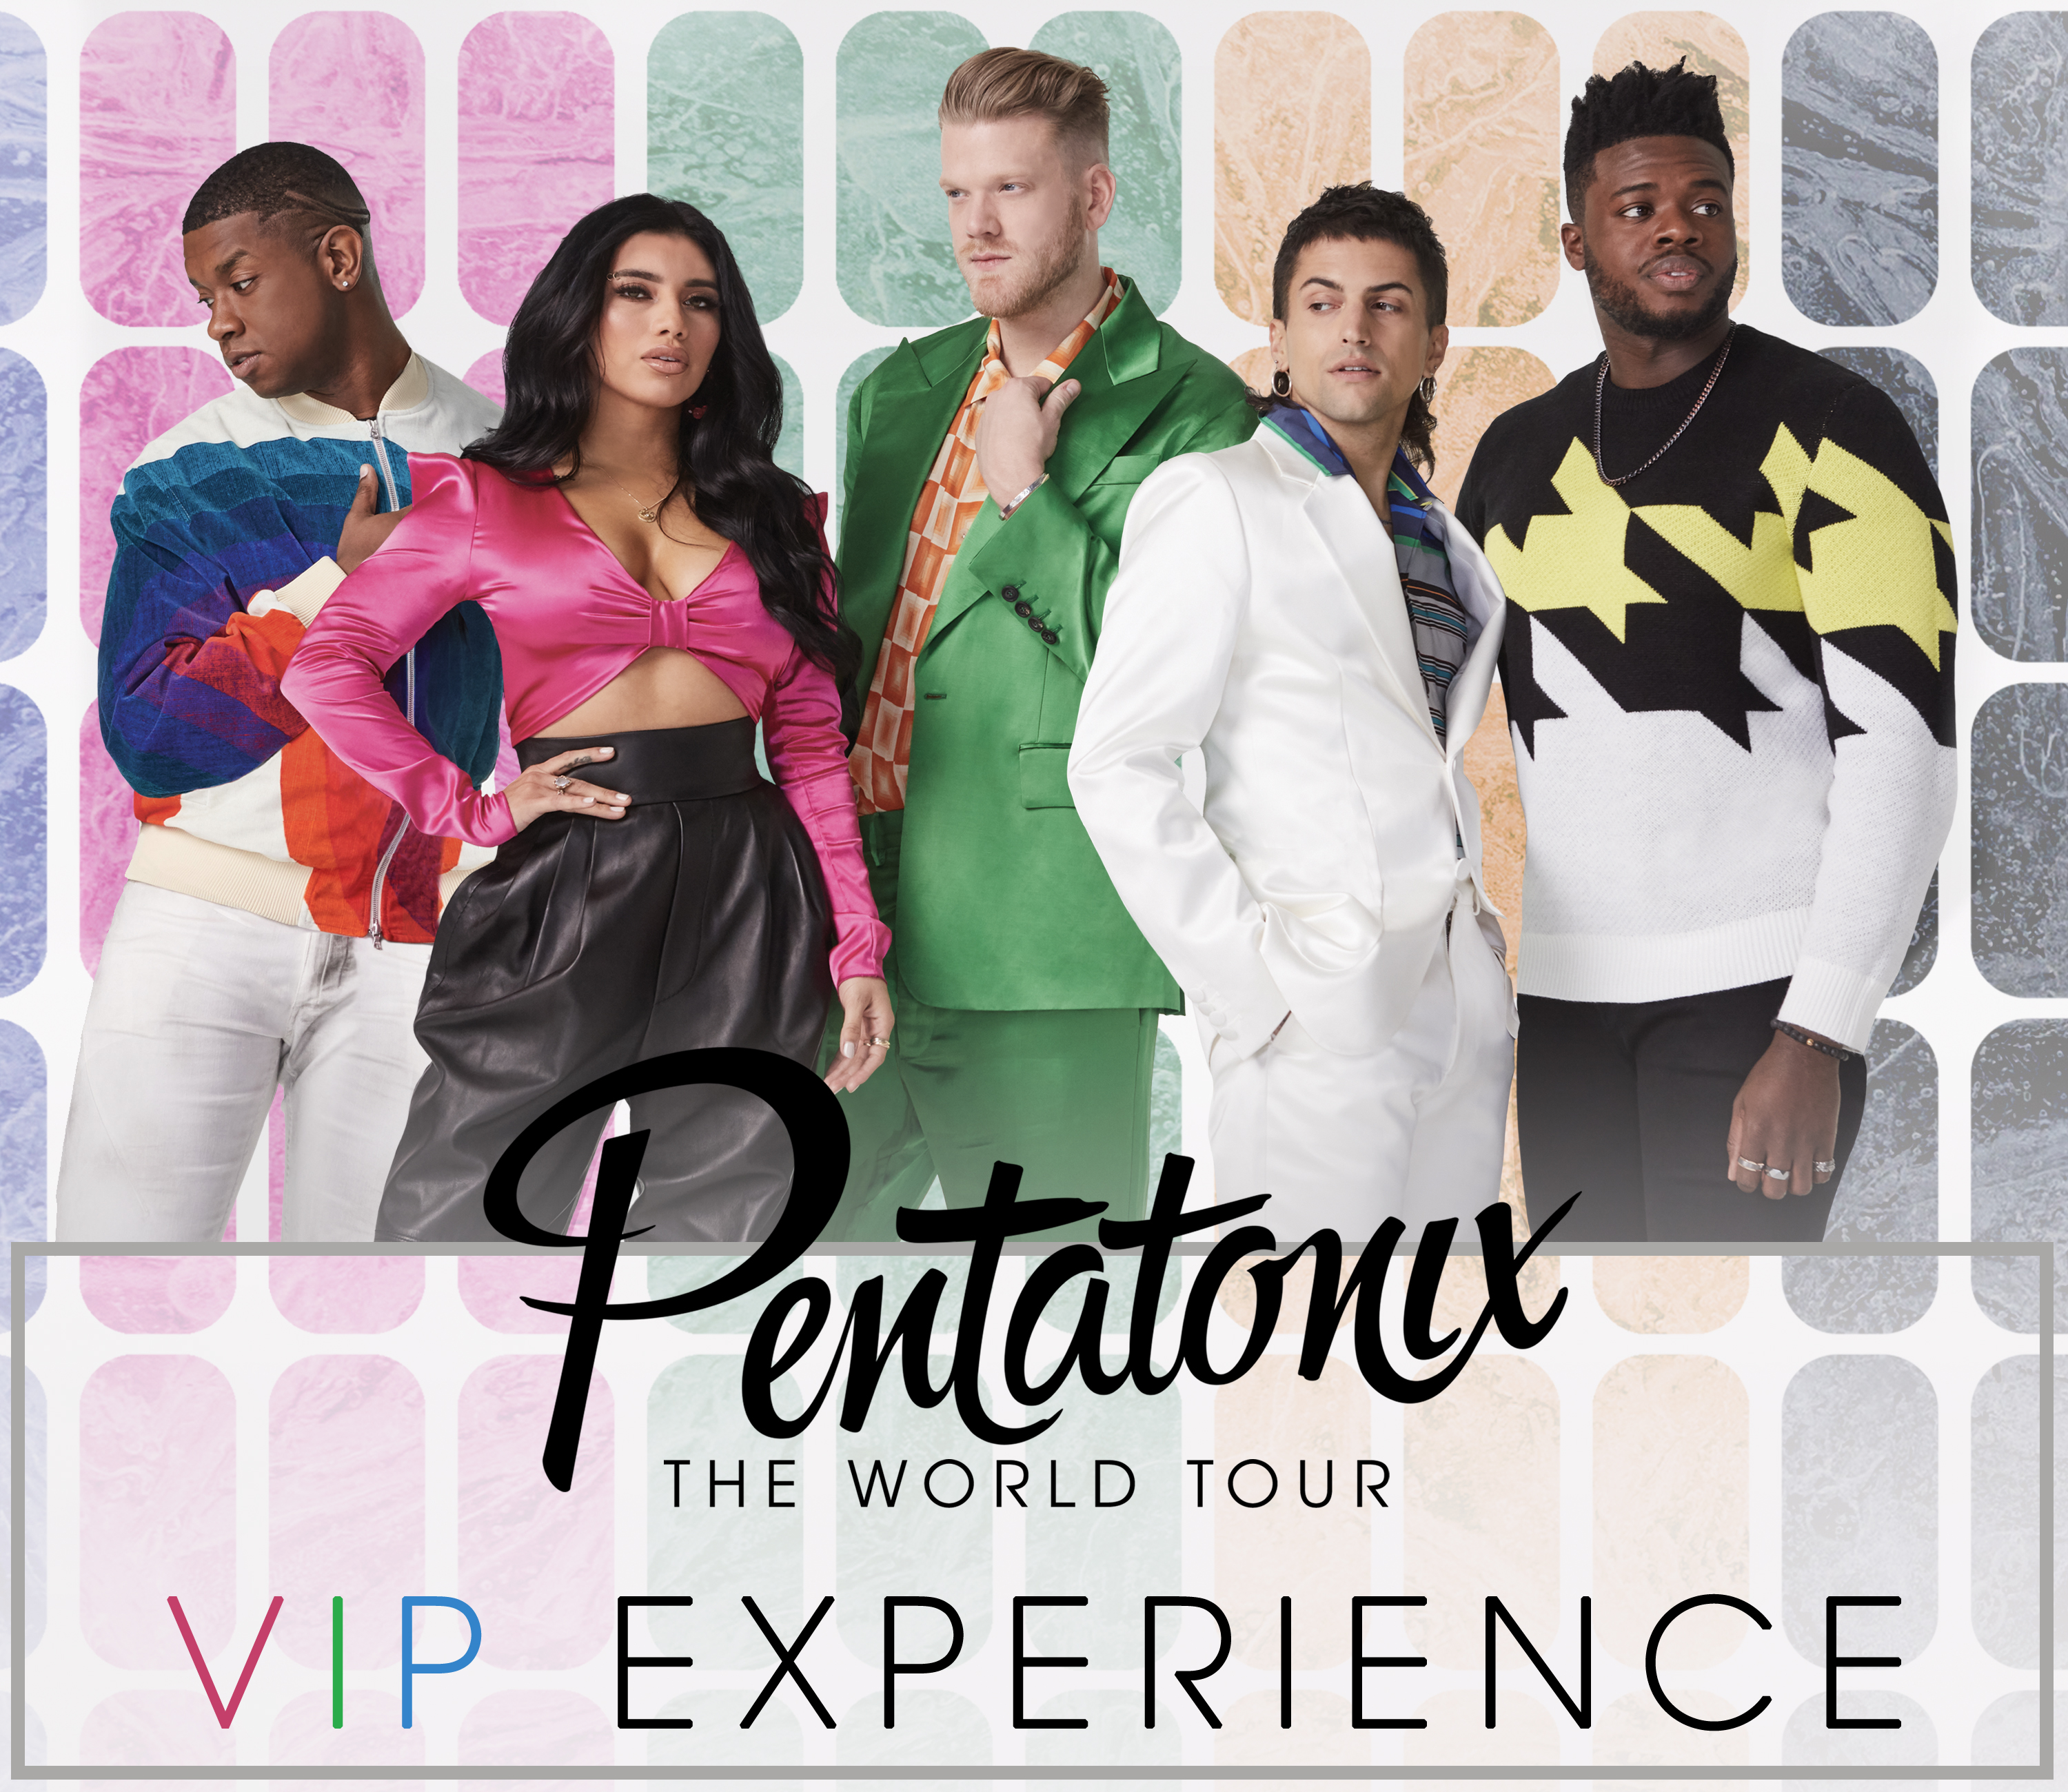 Pentatonix Official Website : Pre-Show PTX Party Meet